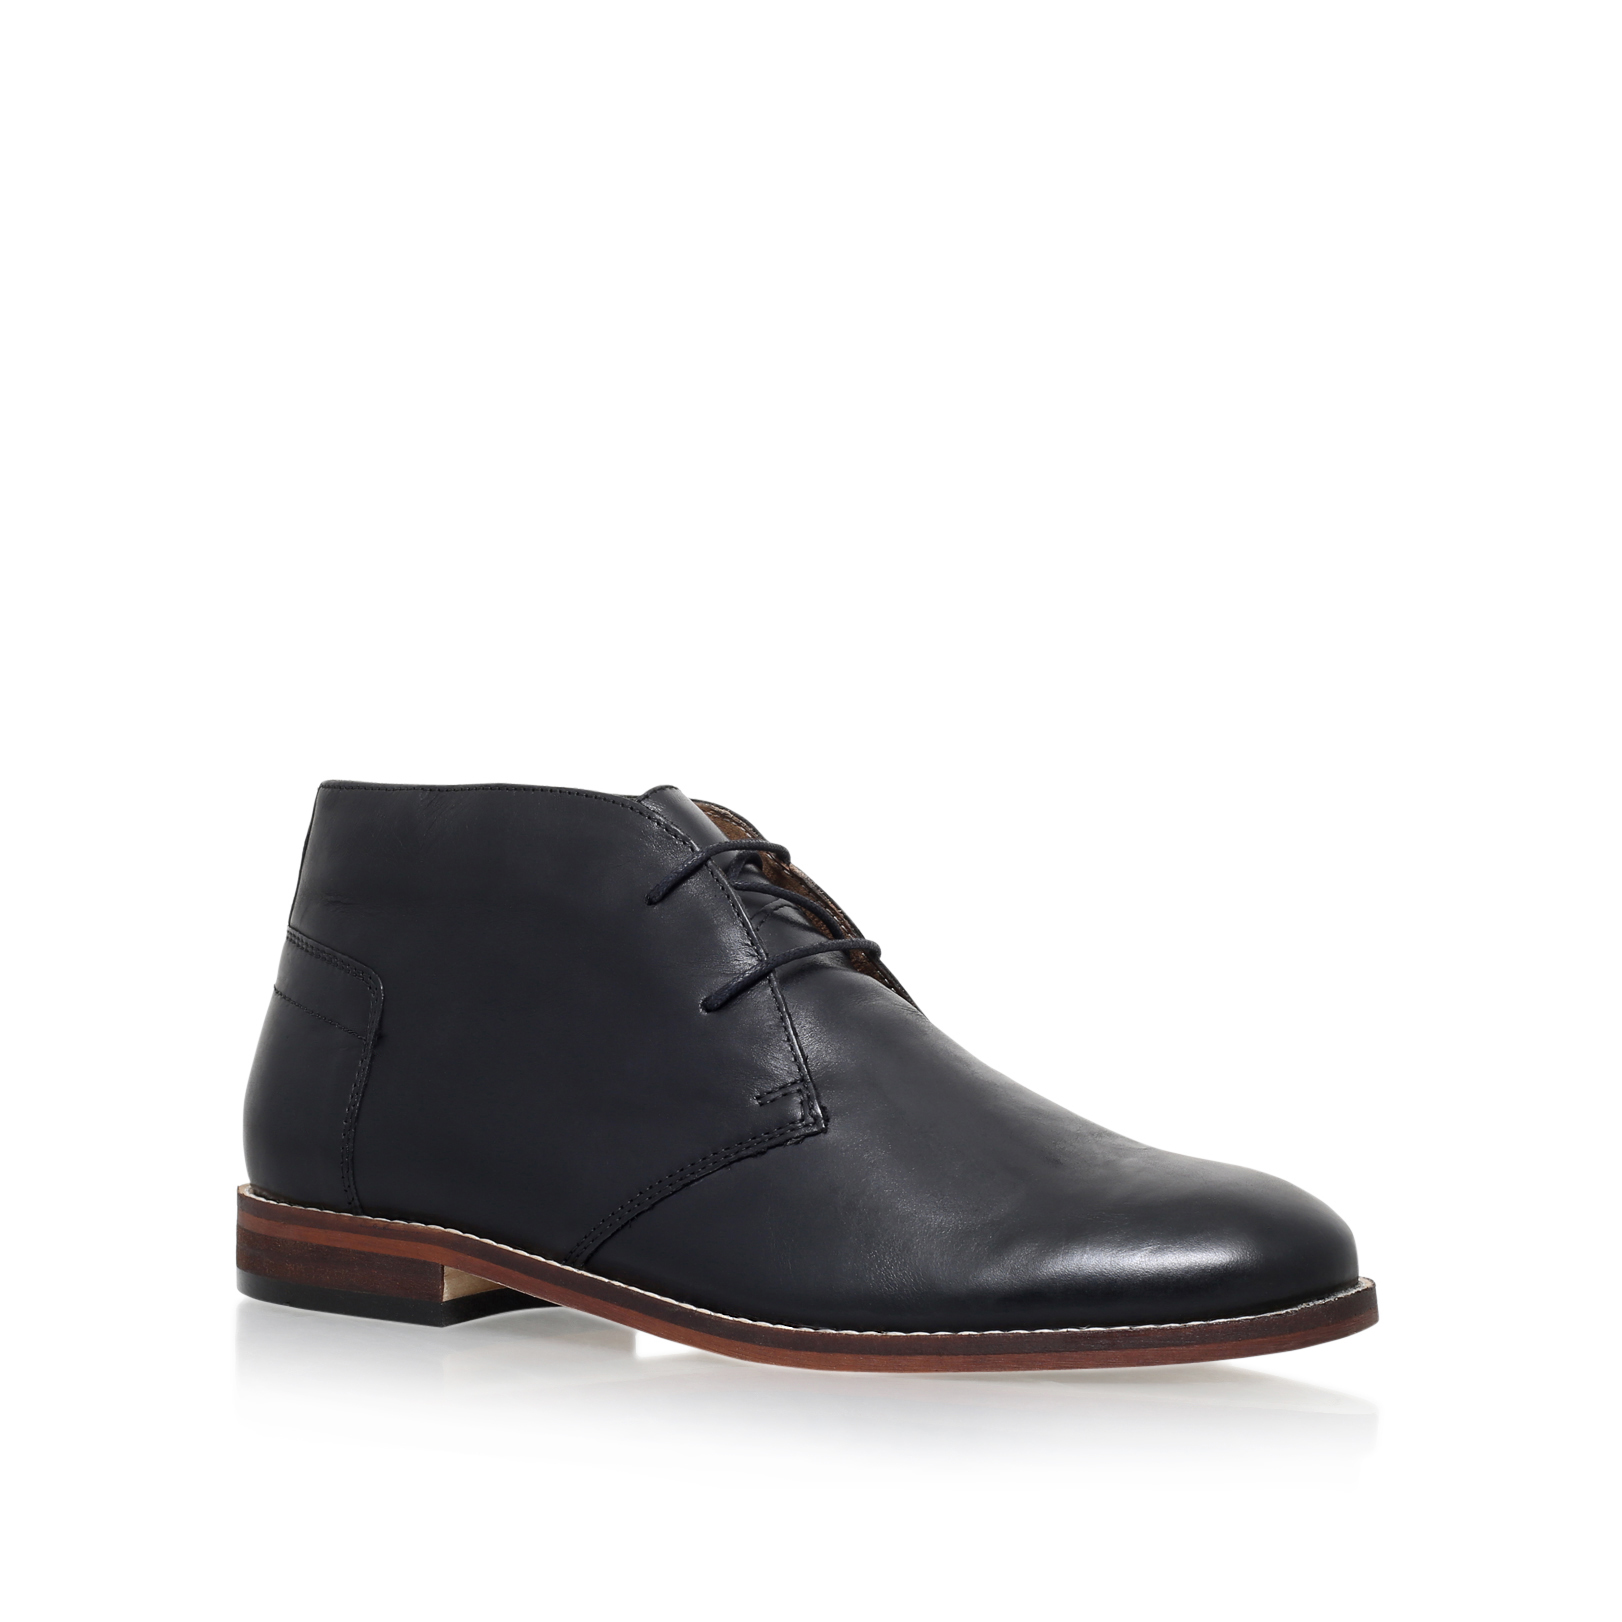 VIKING CHUKKA BOOT